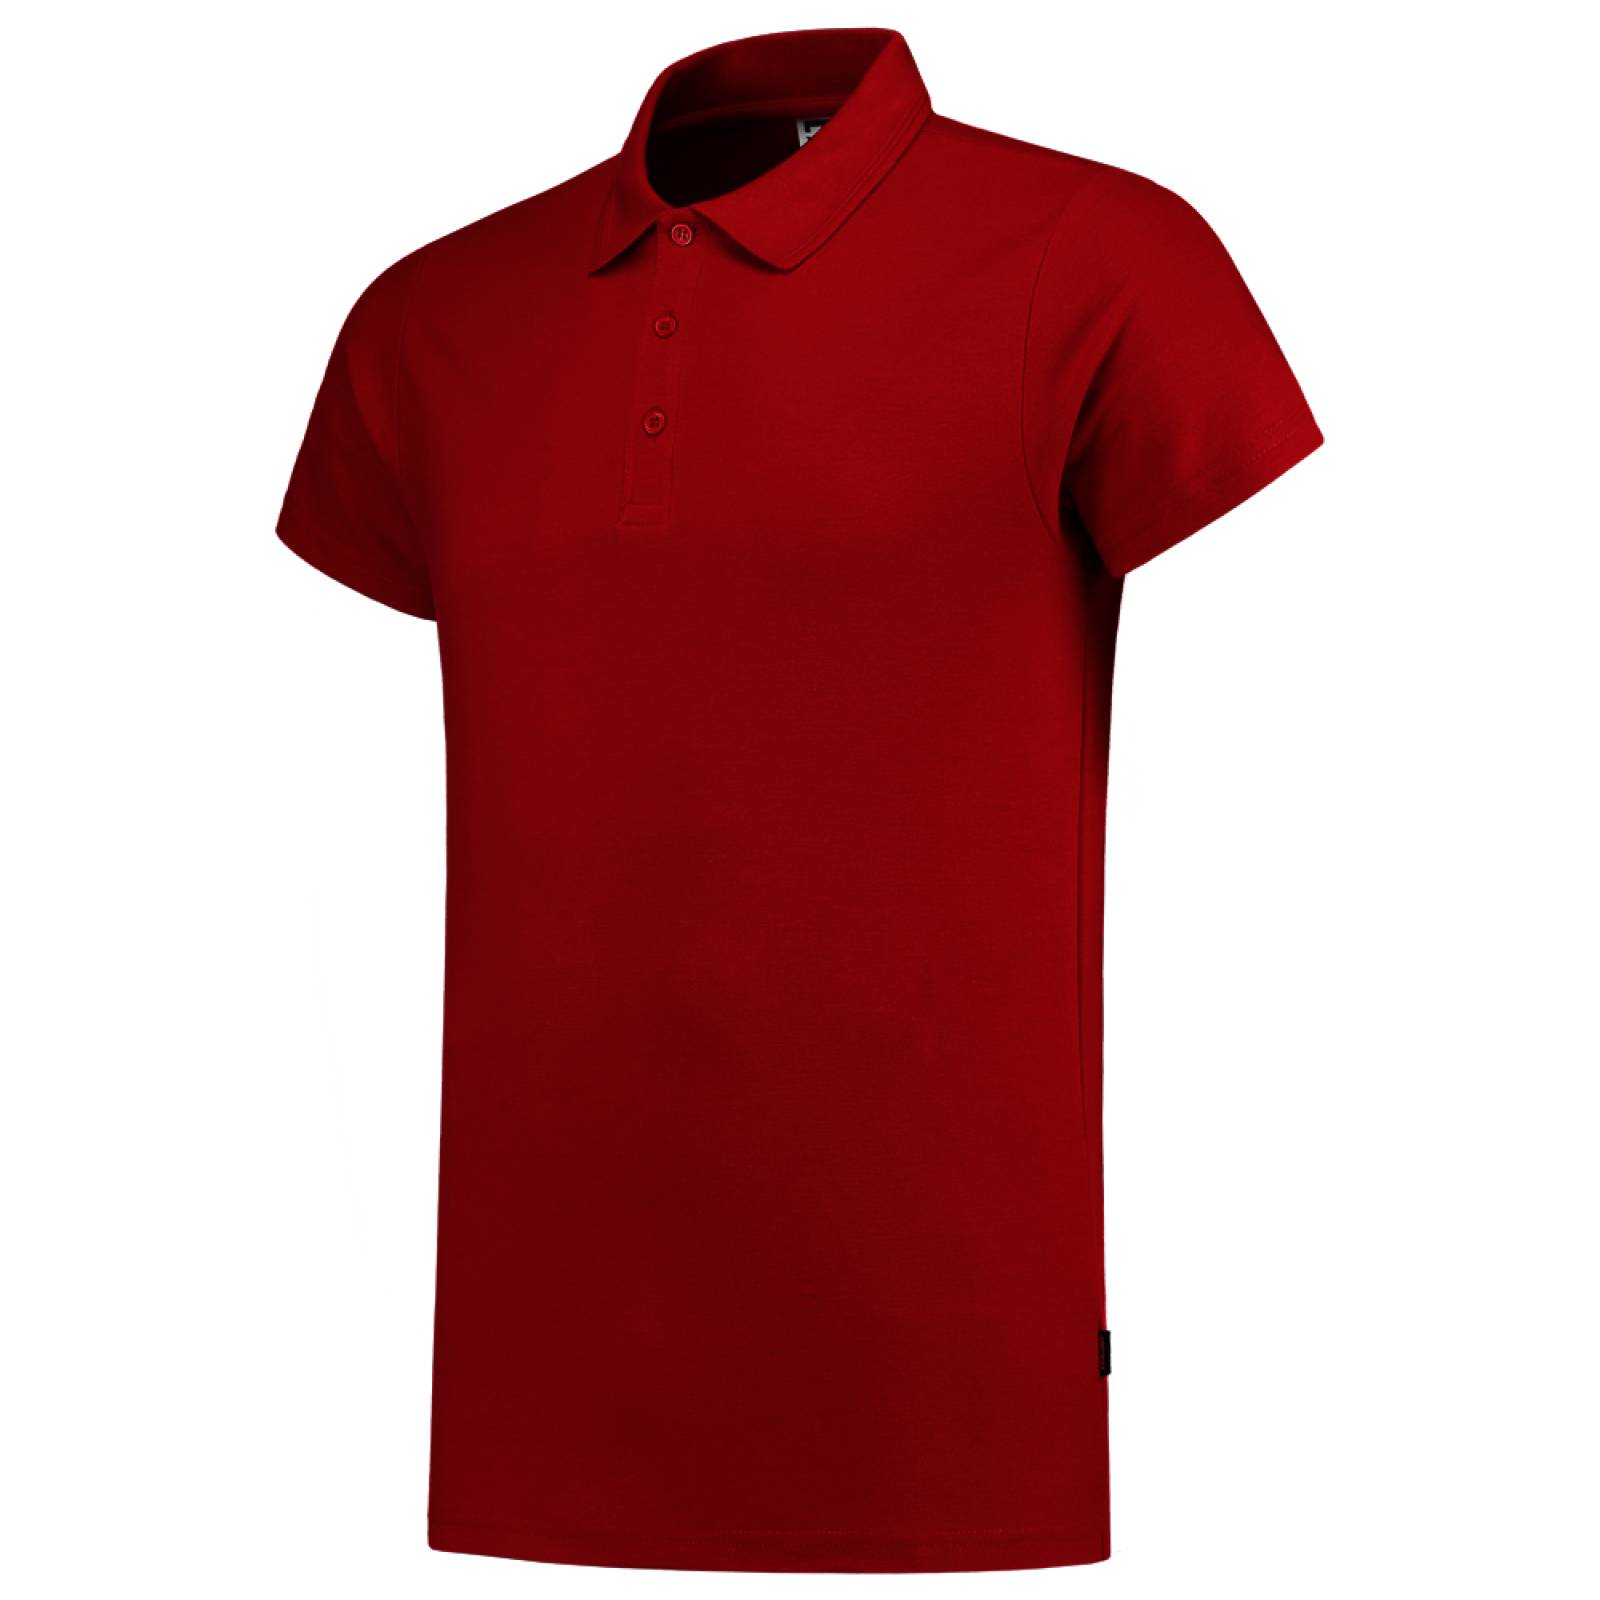 Tricorp Casual Poloshirts 201005-PPF180 rood(Red)